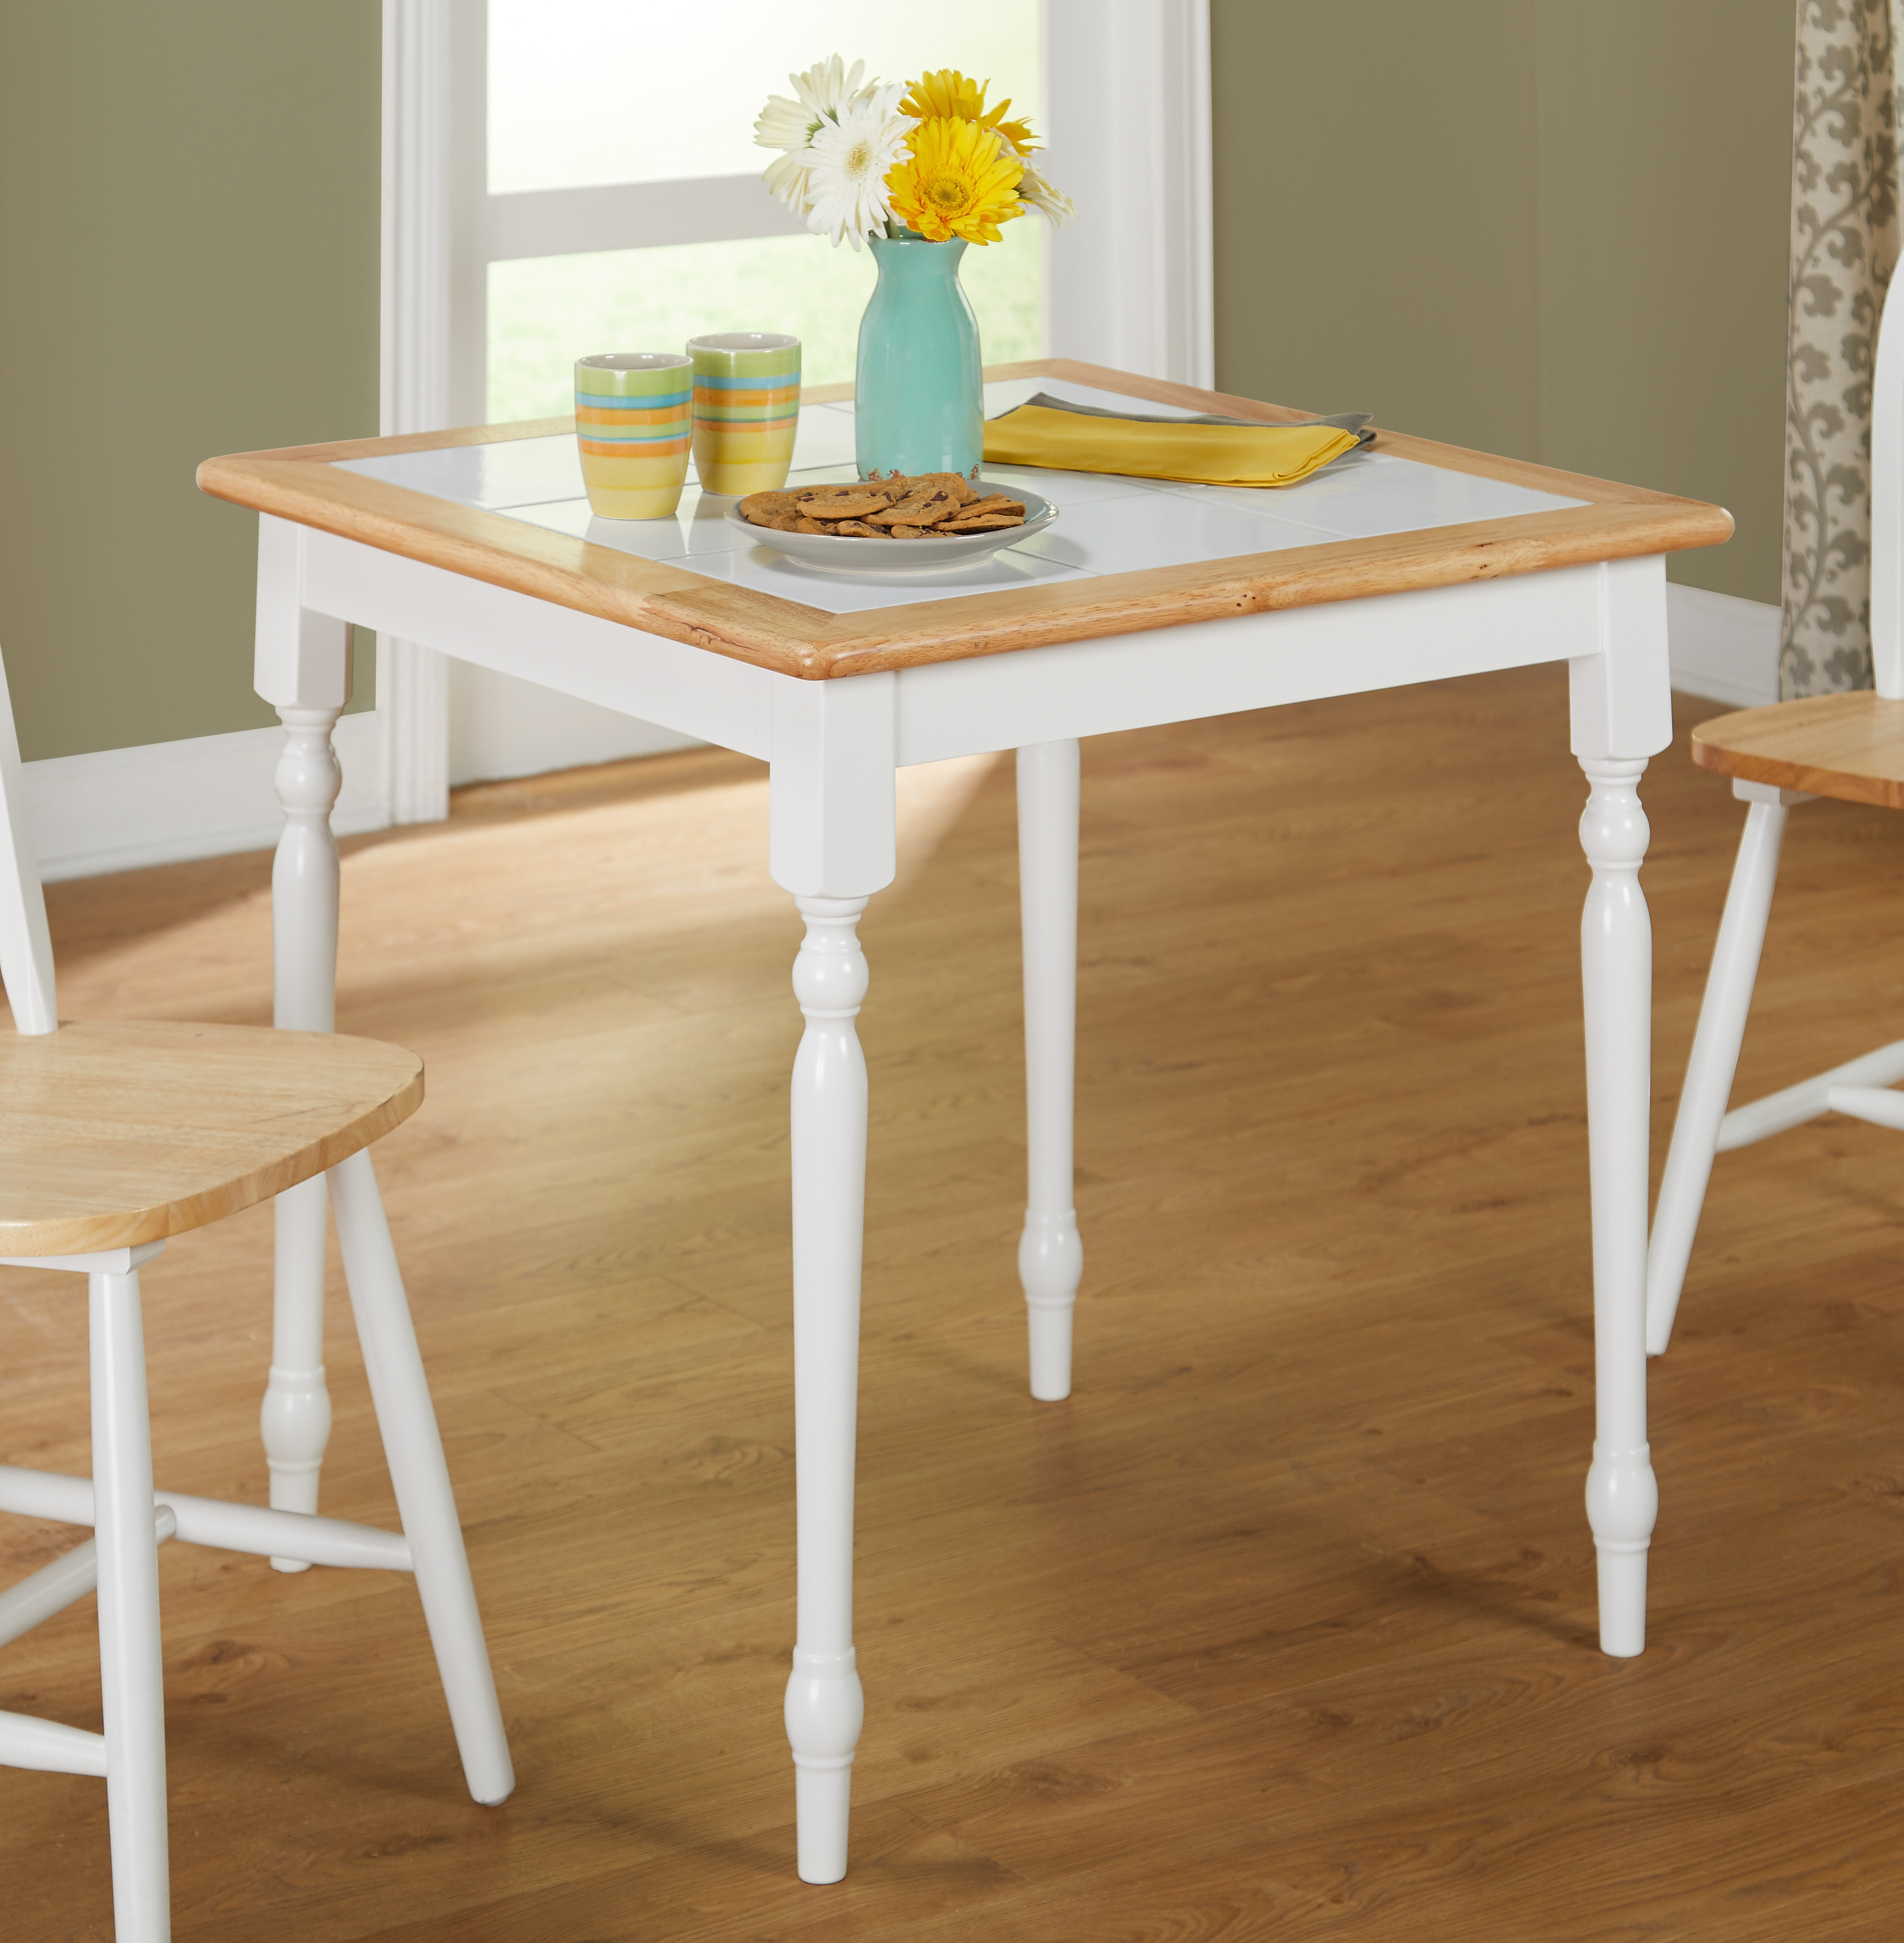 Tile Top Dining Table, White/Natural